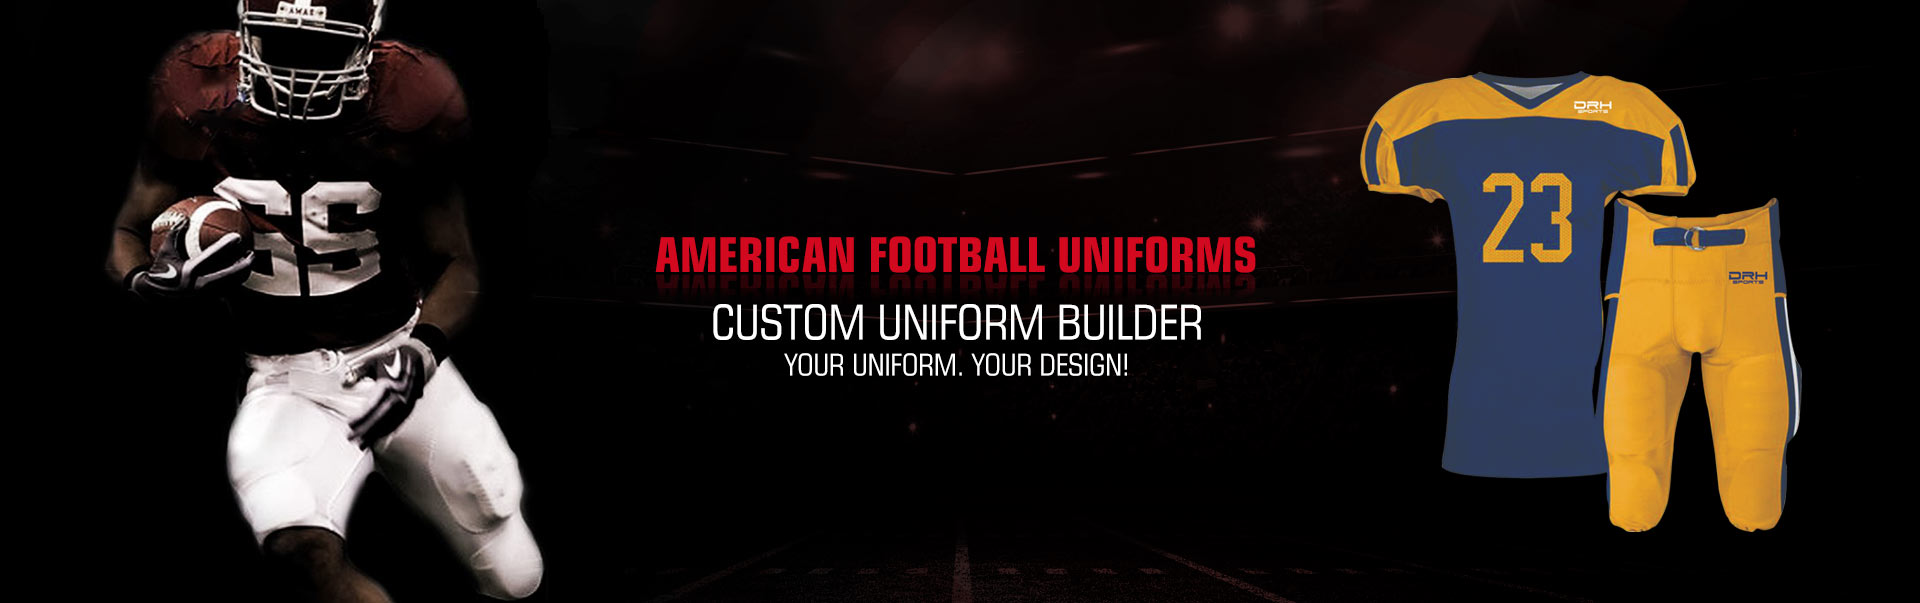 American Football Uniform Wholesaler, Suppliers in Armagh